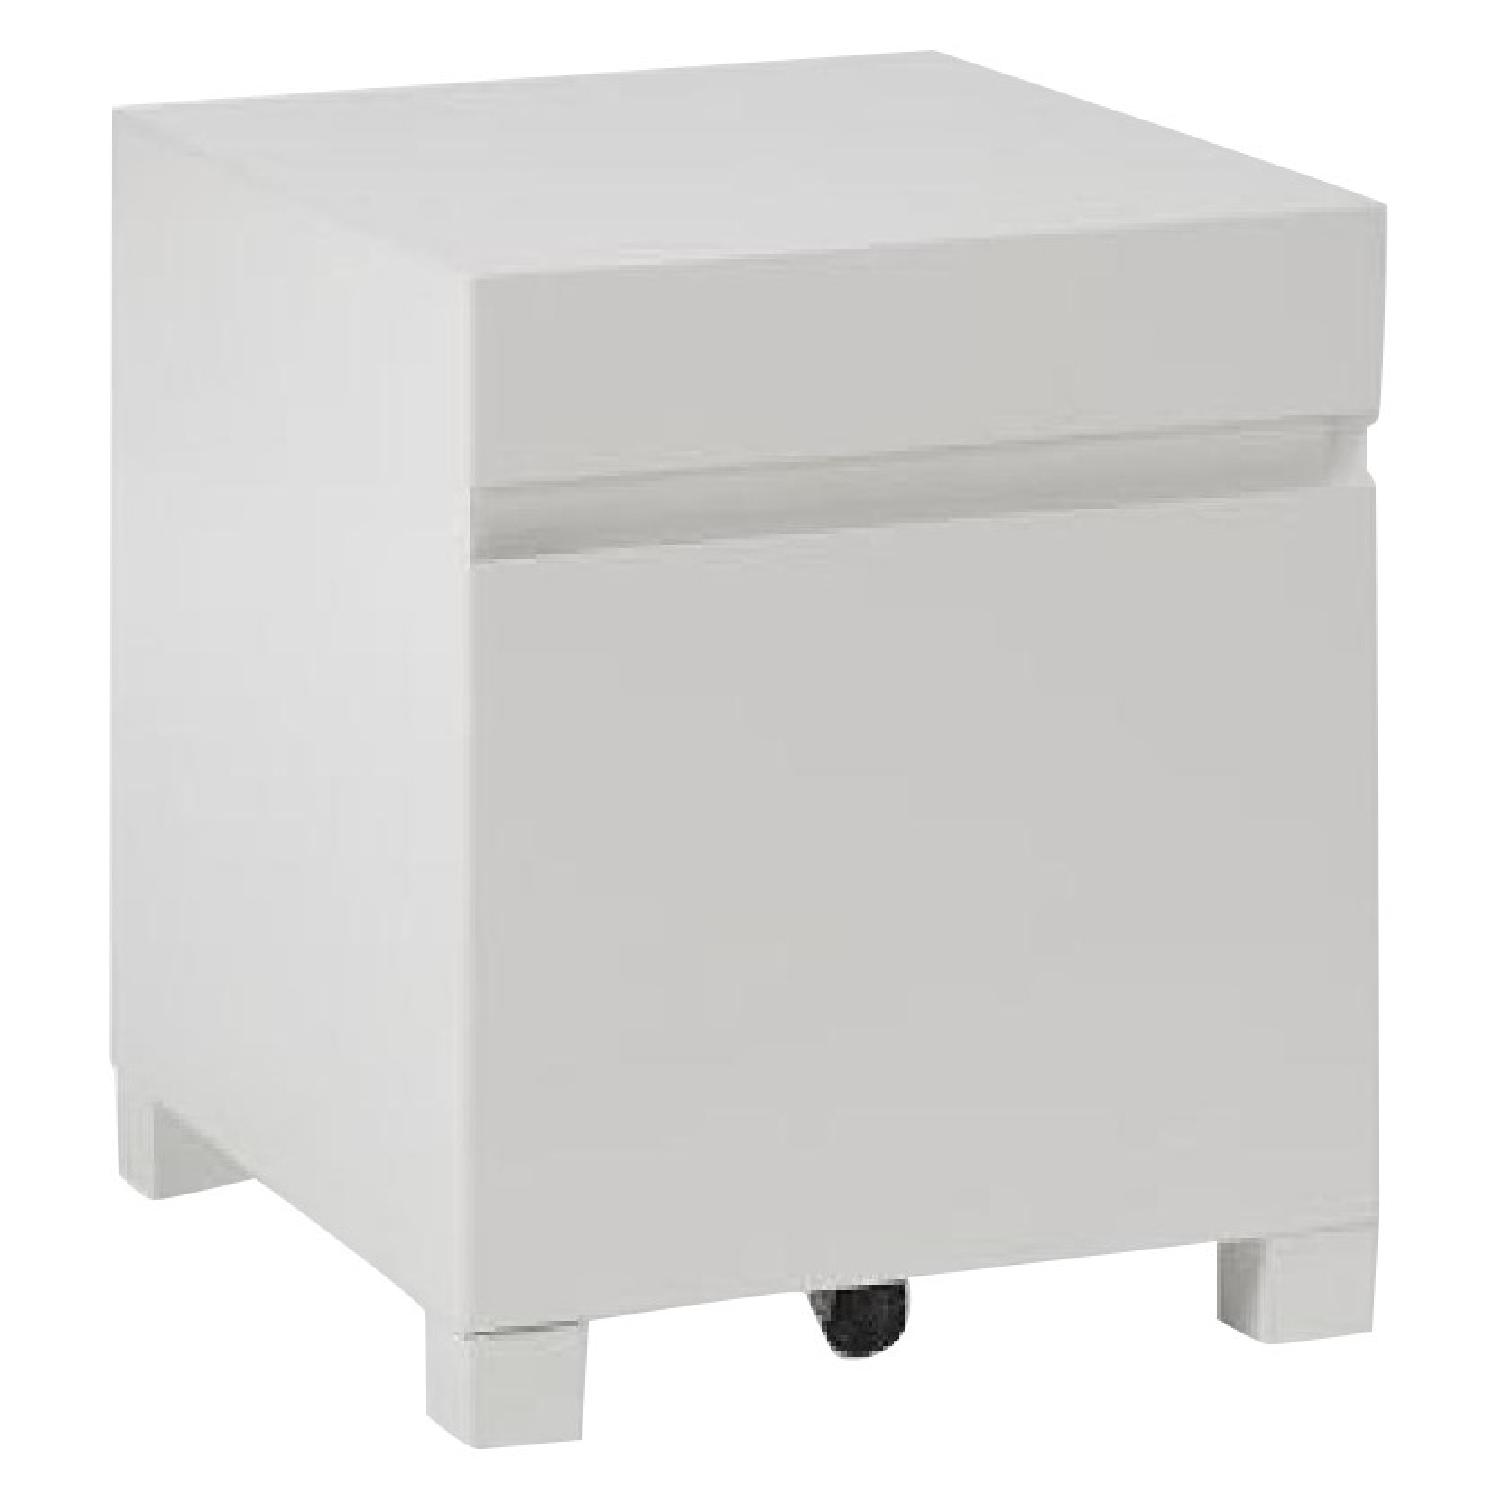 cabinet price casters filing size p htm cabi with legal two black retail letter file locking drawer